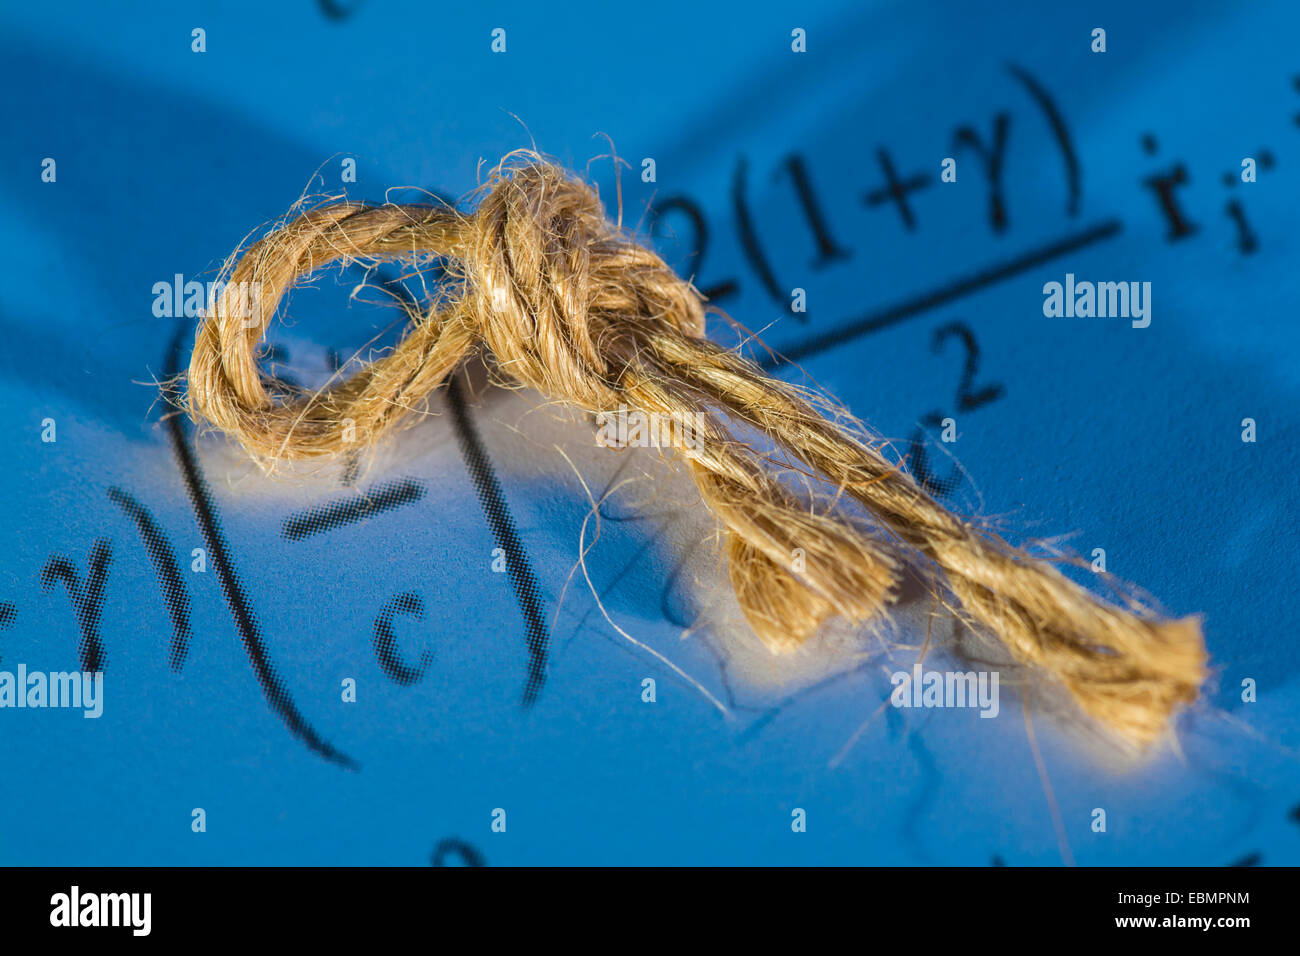 String theory concept. - Stock Image